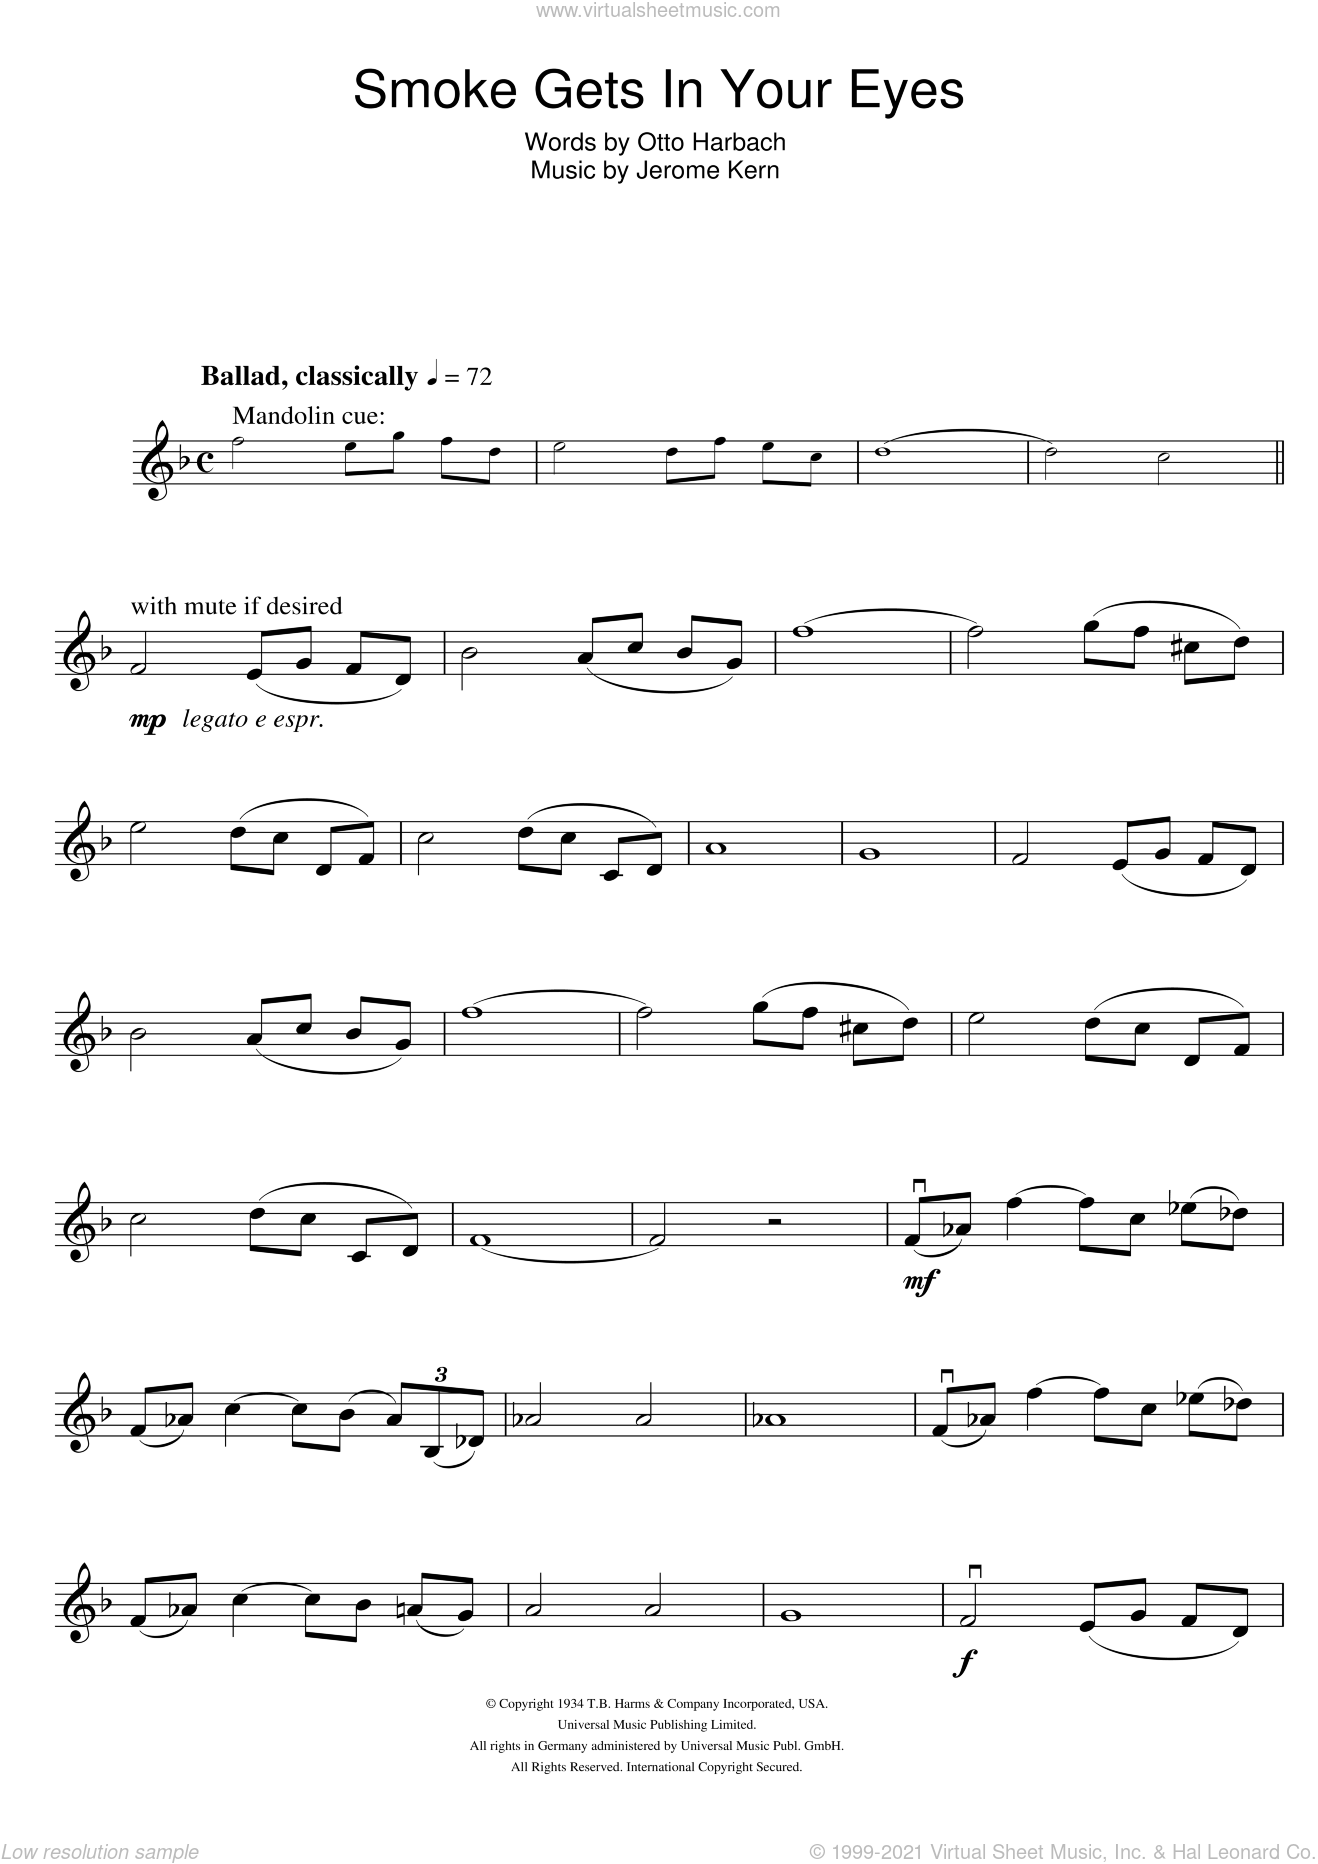 Smoke Gets In Your Eyes sheet music for violin solo by Jerome Kern and Otto Harbach, intermediate skill level